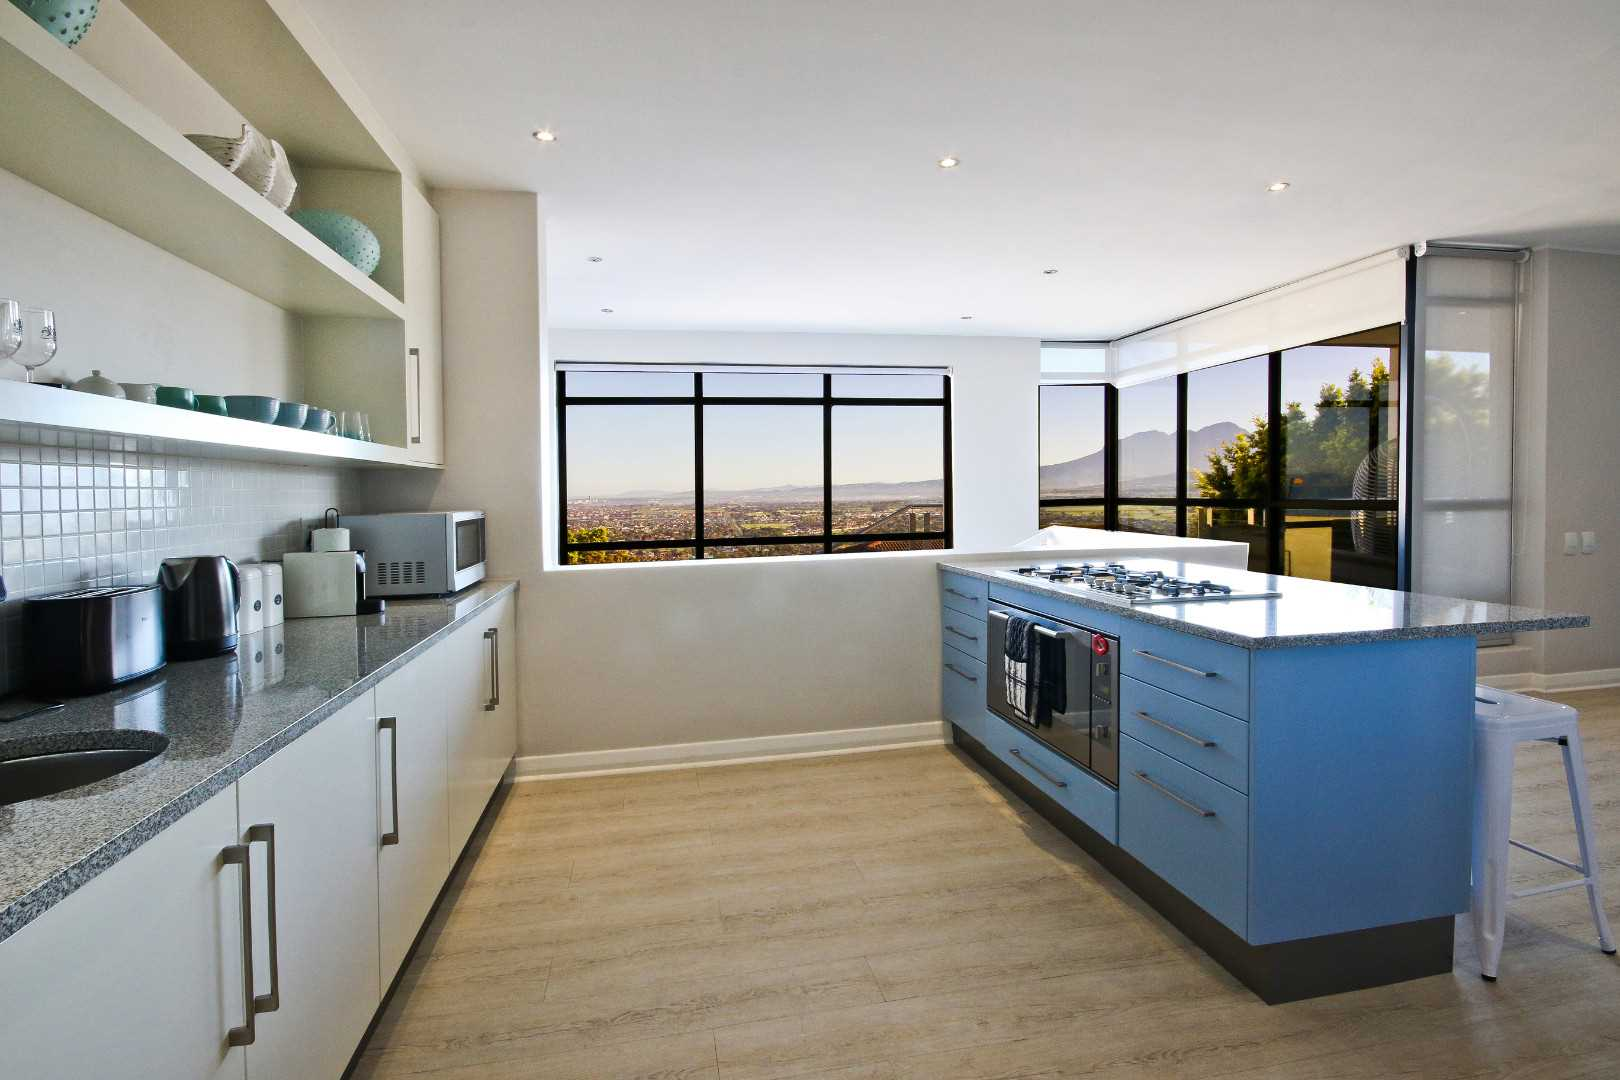 Open plan kitchen to dining area, fitted with gas hob, electric oven